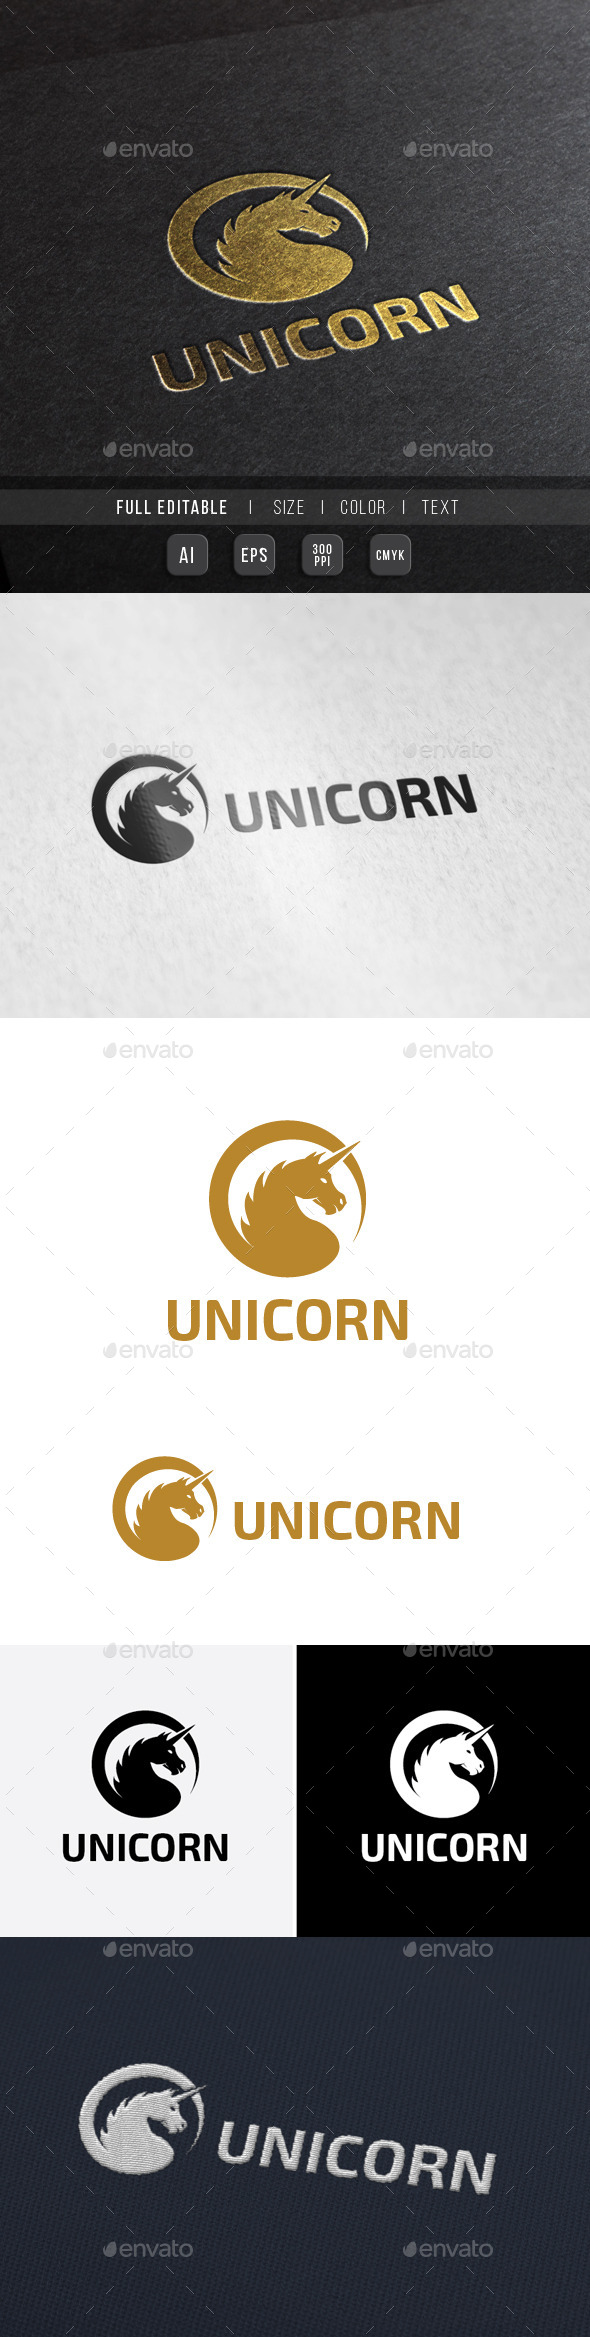 Royal Knight Unicorn - Crests Logo Templates